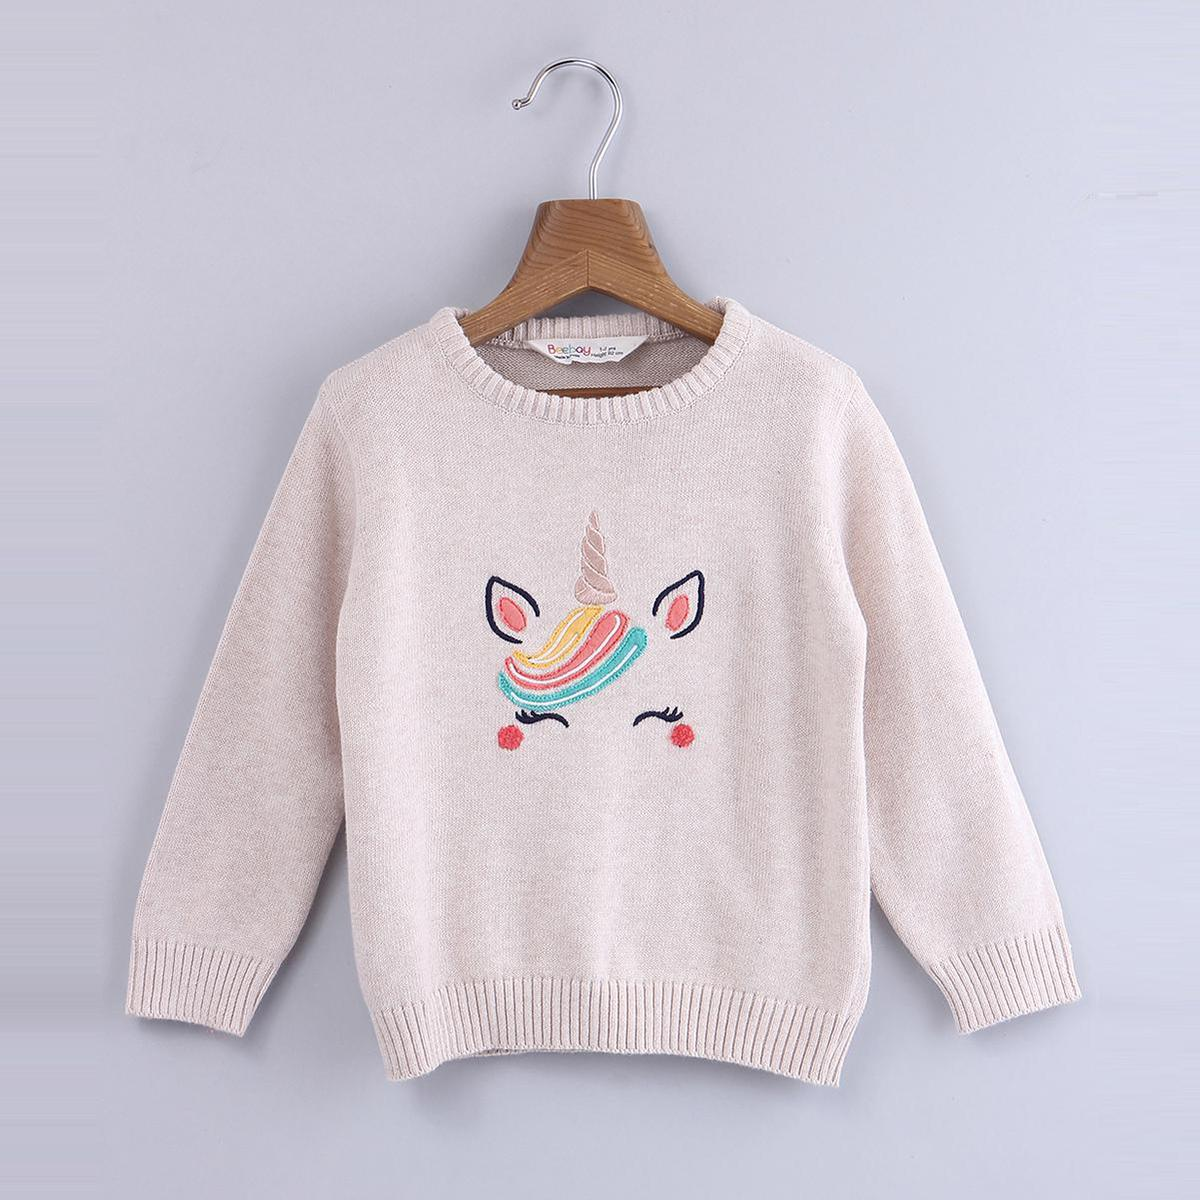 Beebay - Beige Colored Unicorn Cotton Sweater For Infants Girls